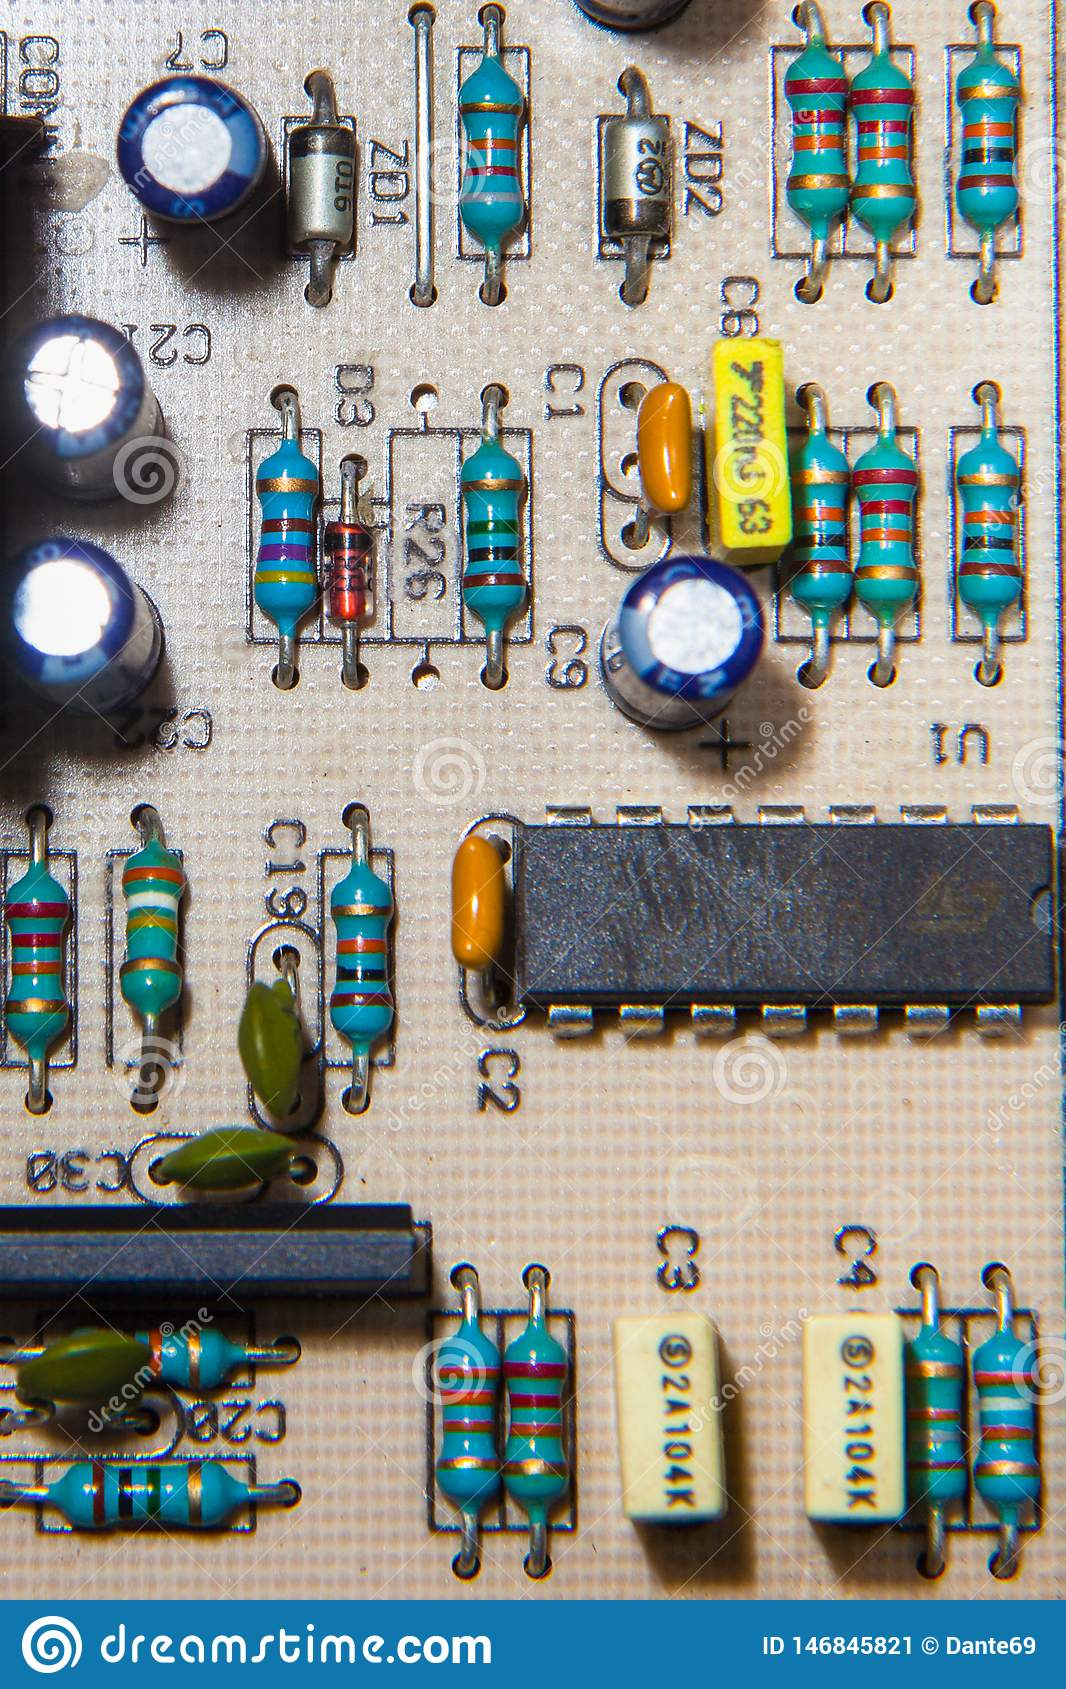 capacitor resistor transistor diode electronic components youtube